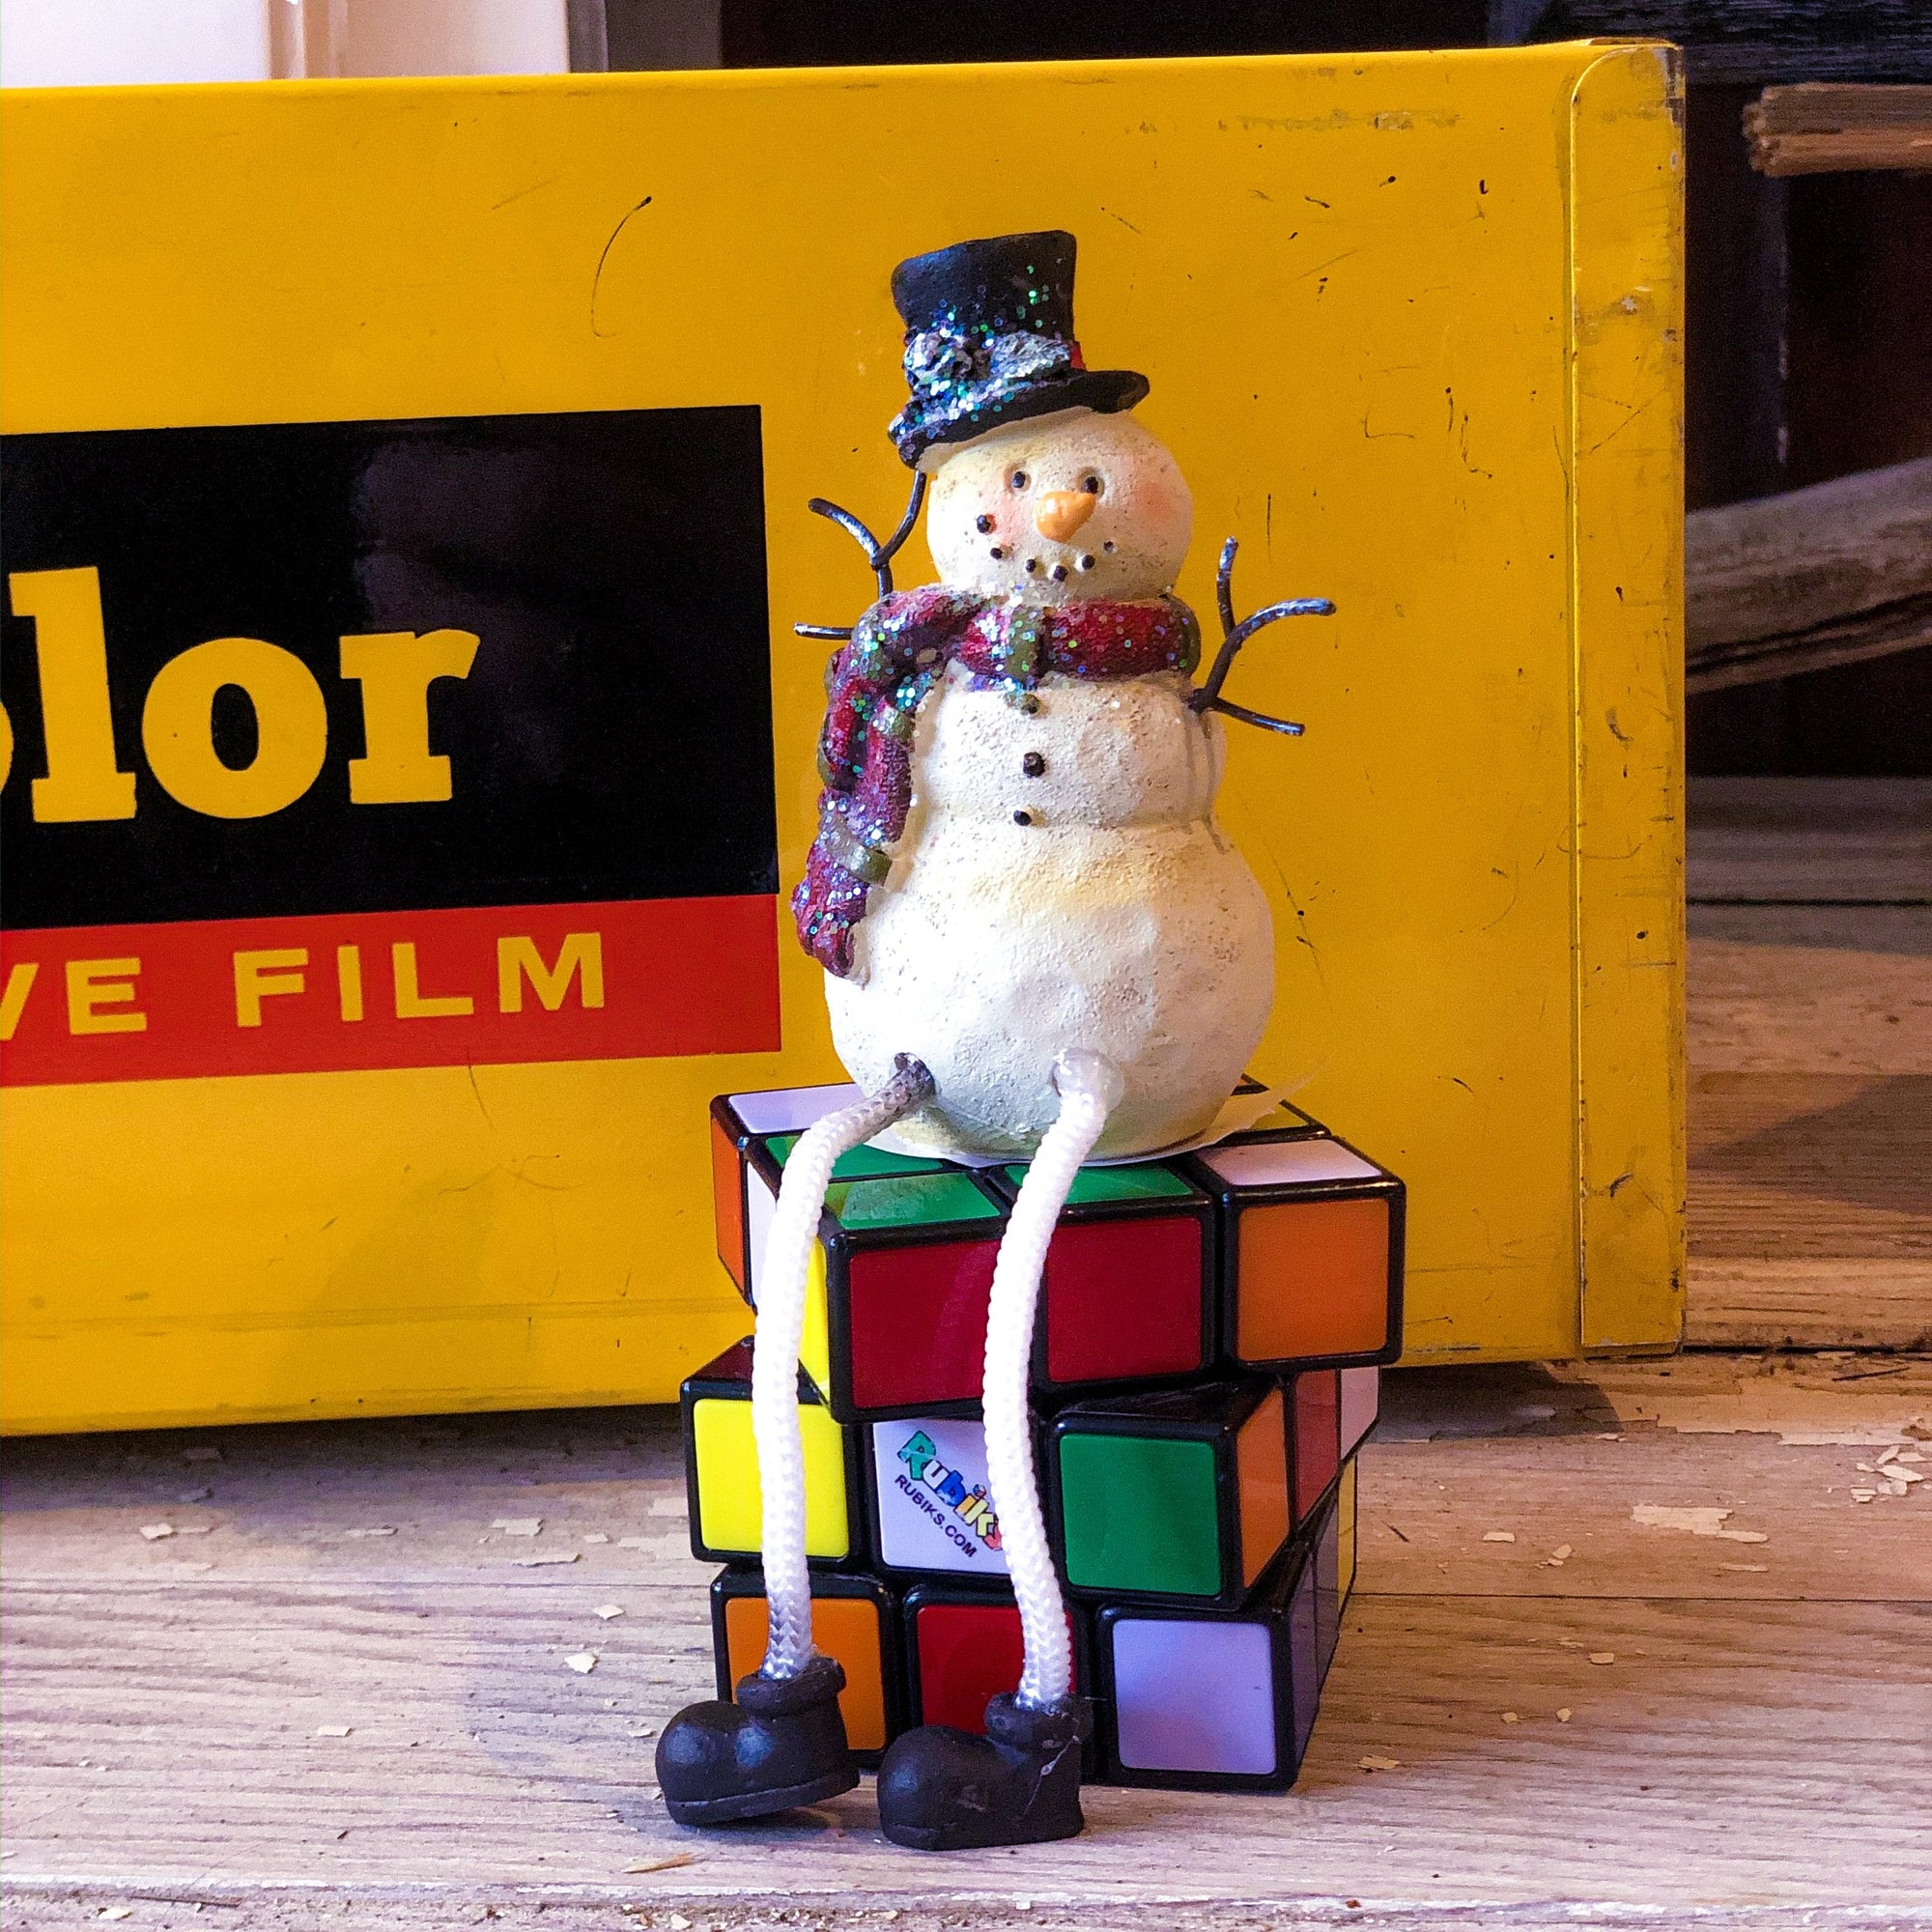 Buy Frosty the Snowman With Tophat Shelf Sitter from Walking Pants Curiosities, the Most un-General Gift Store in Downtown Memphis, Tennessee!